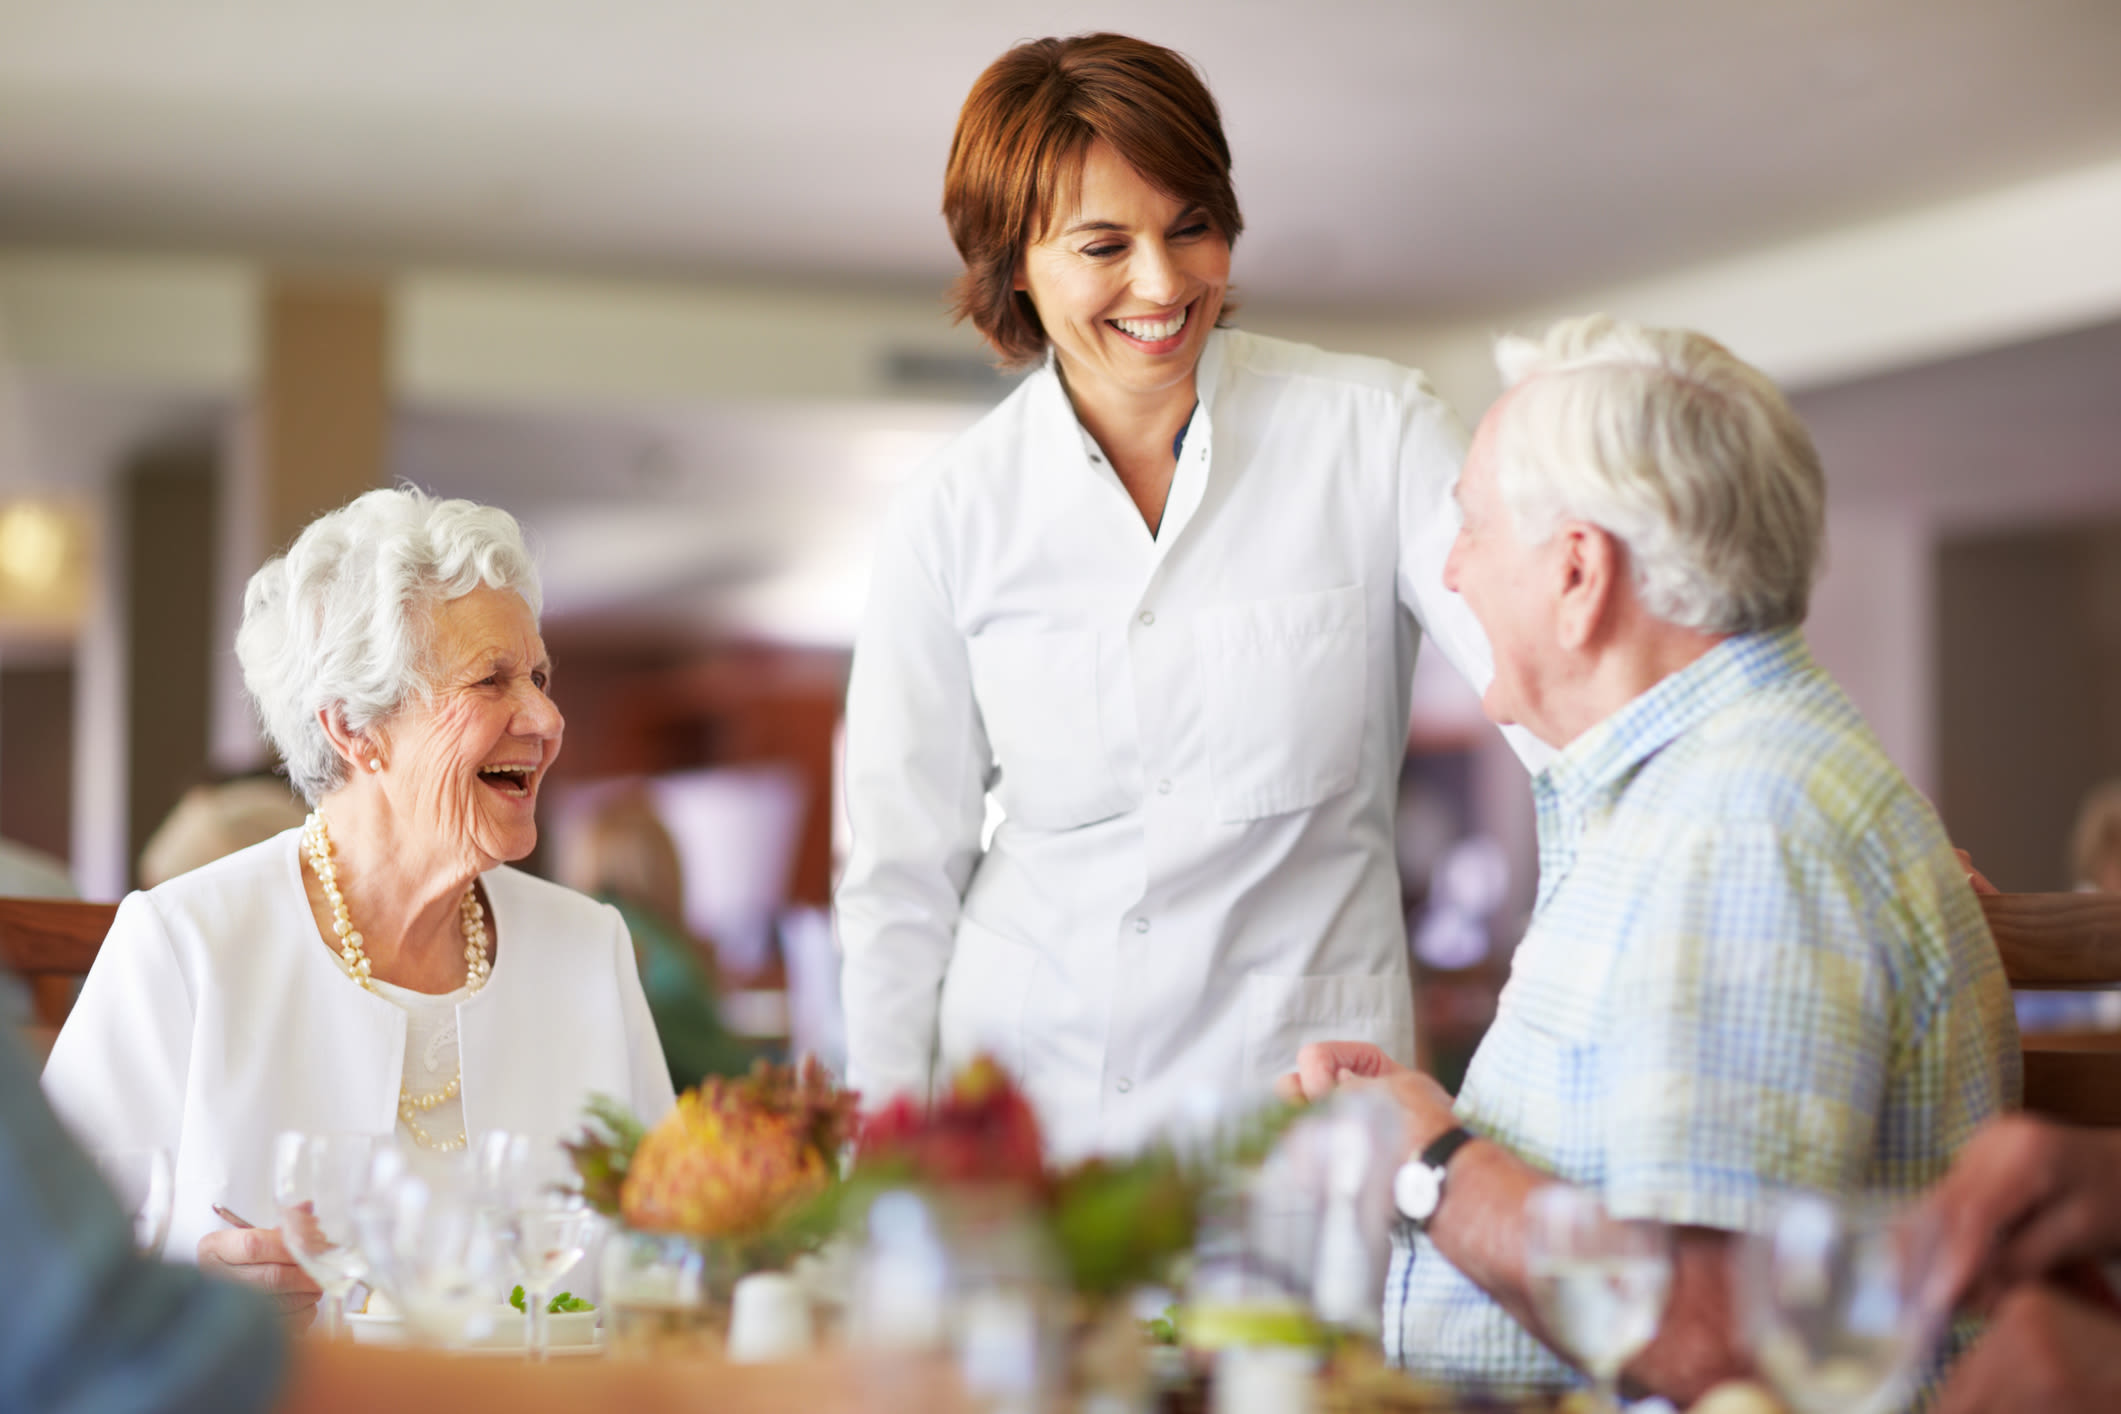 A server speaking with residents at Almond Heights in Orangevale, California